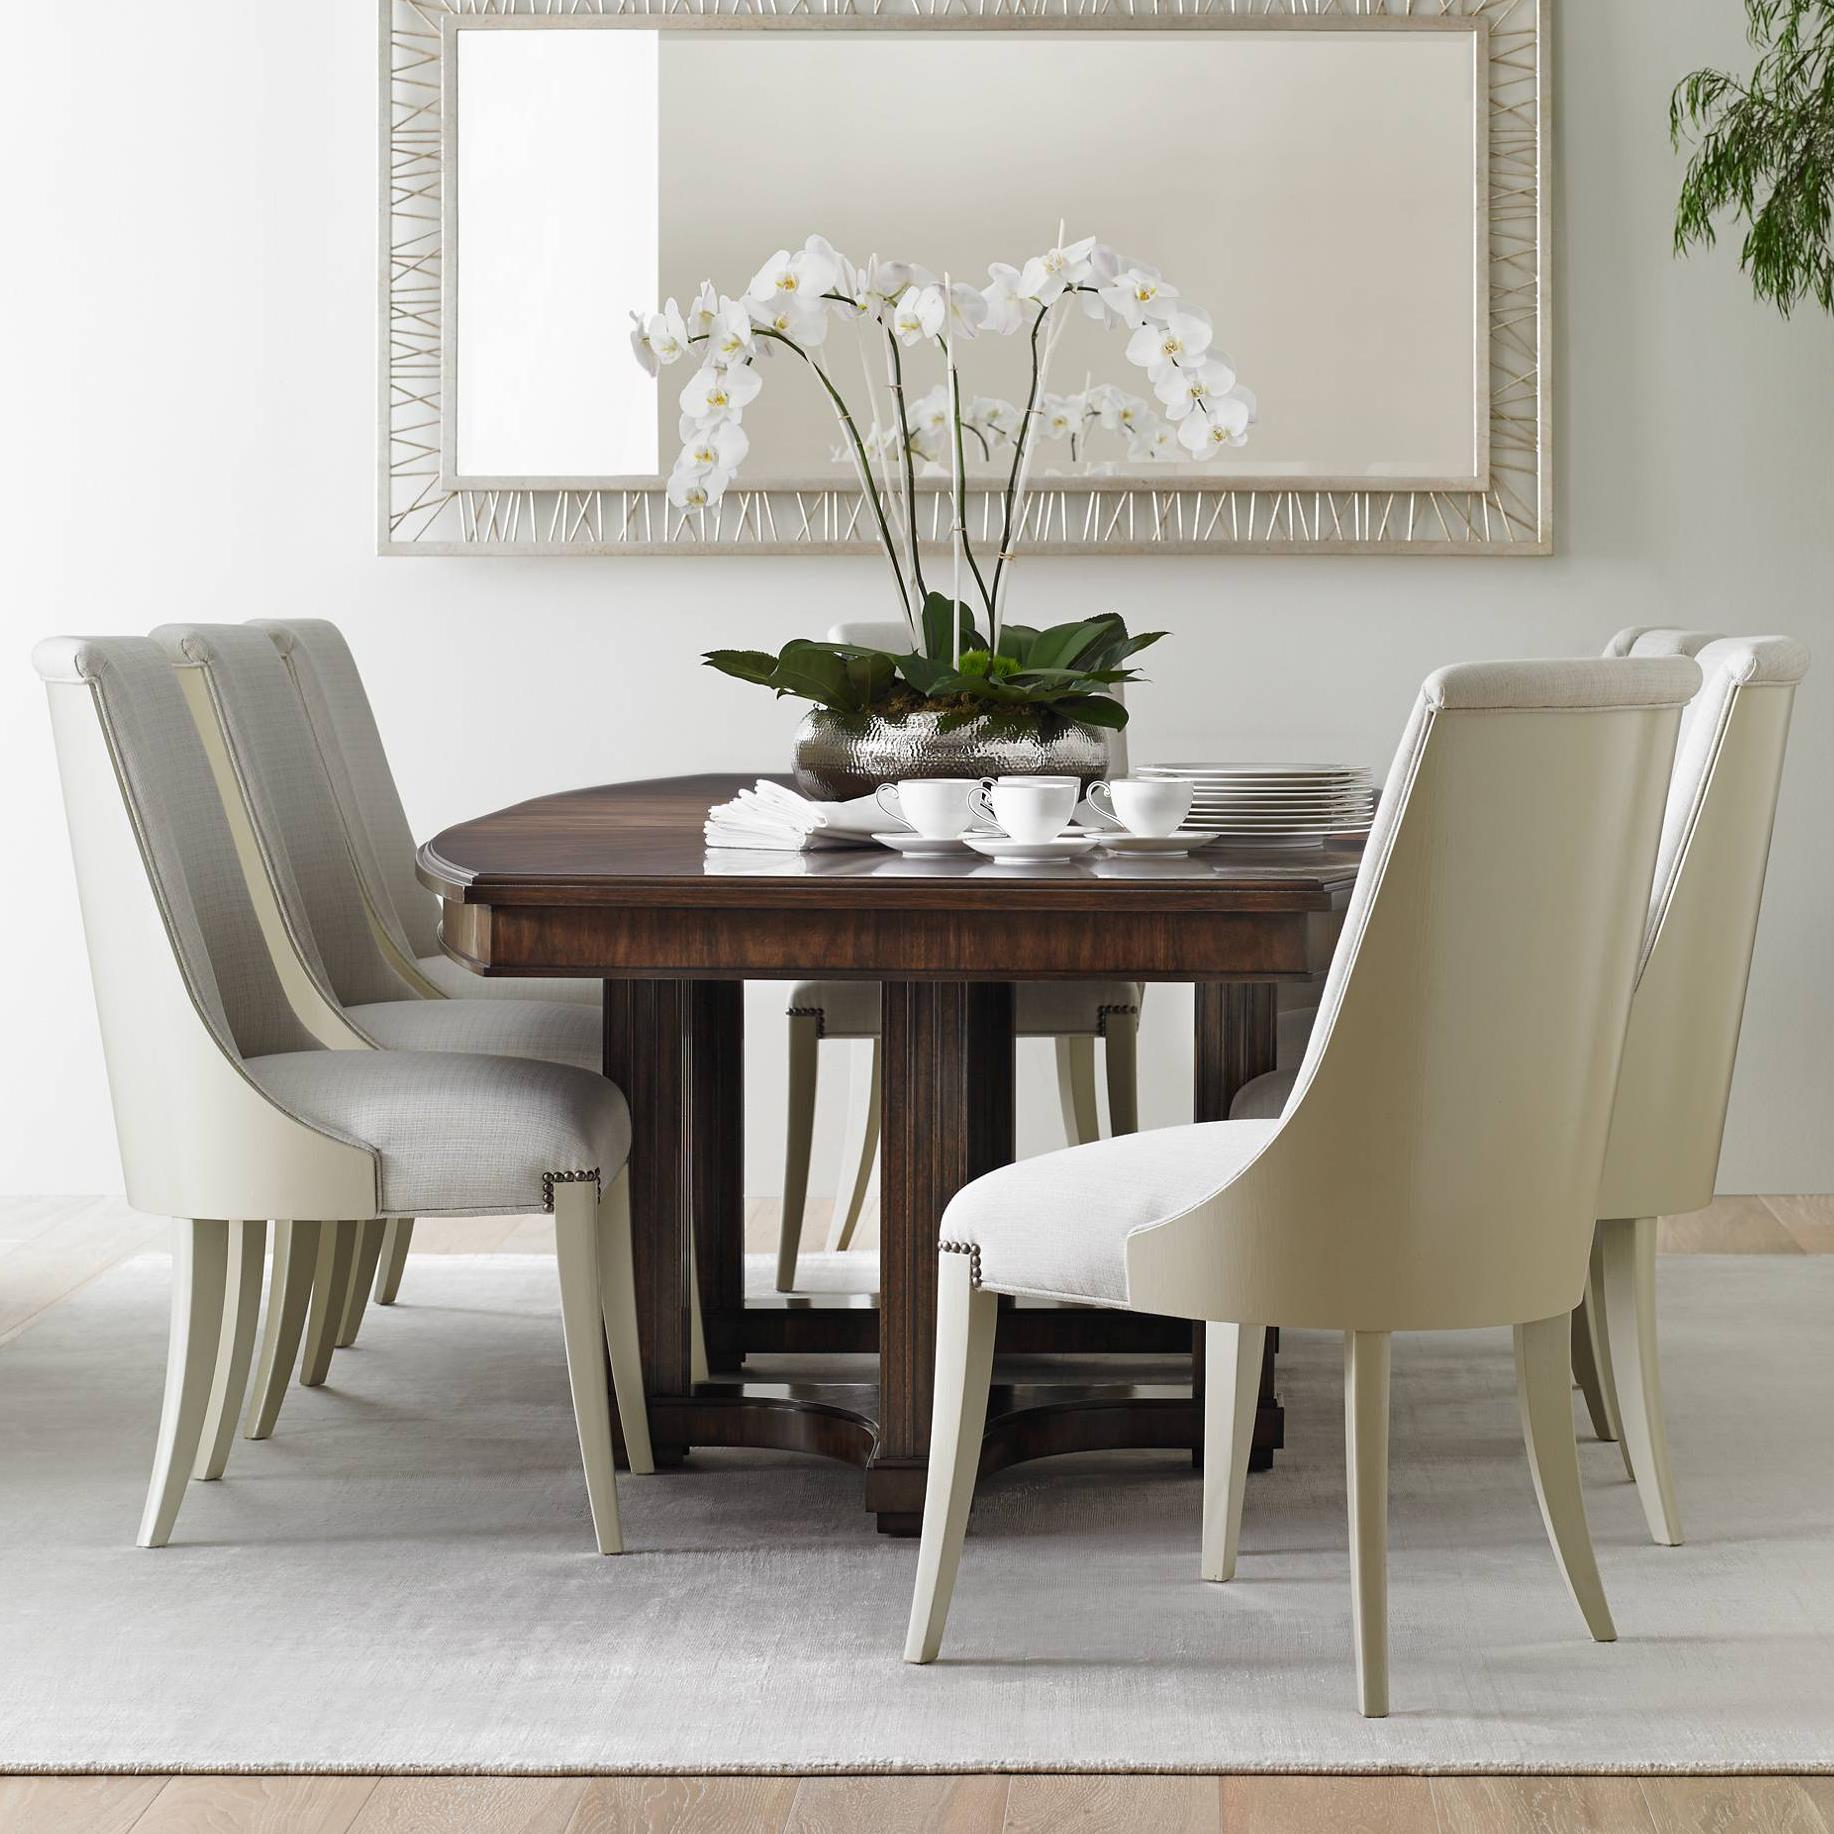 Stanley Furniture Crestaire 9-Piece Lola Double Pedestal Table Set - Item Number: 436-11-36+8x21-75